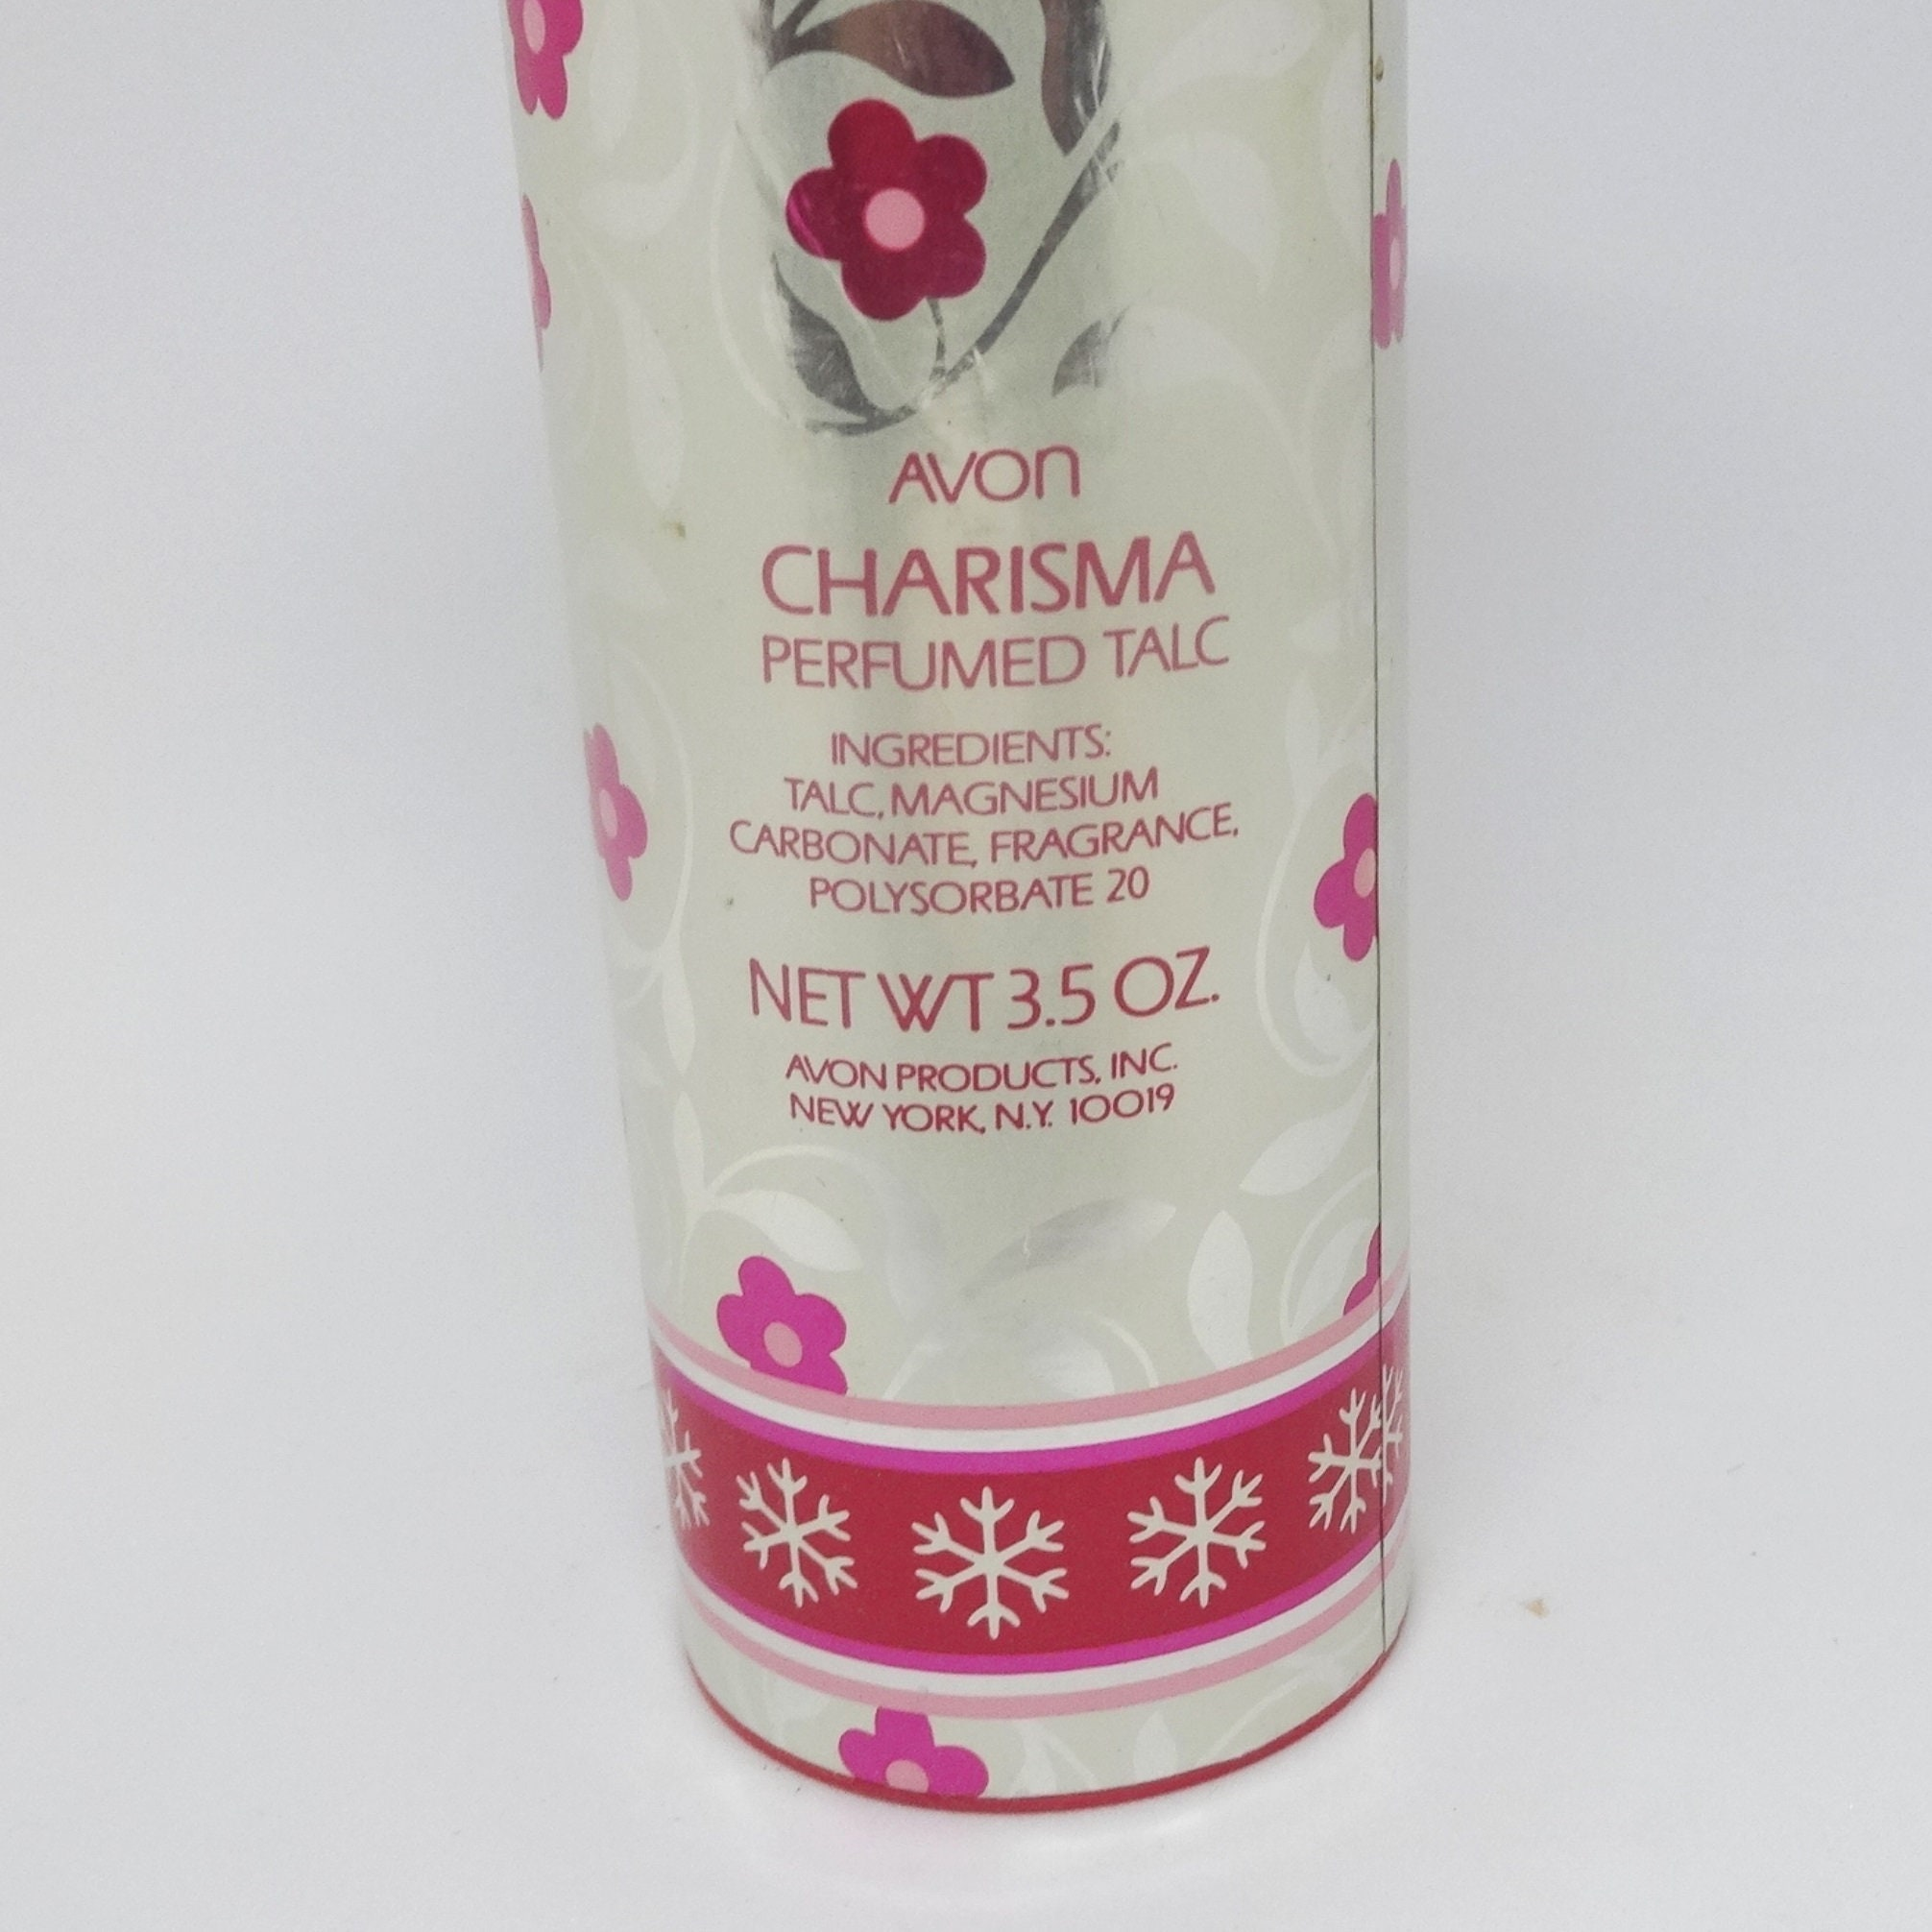 1970s Avon Charisma Perfumed Talc About 1/3 to 1/2 Content